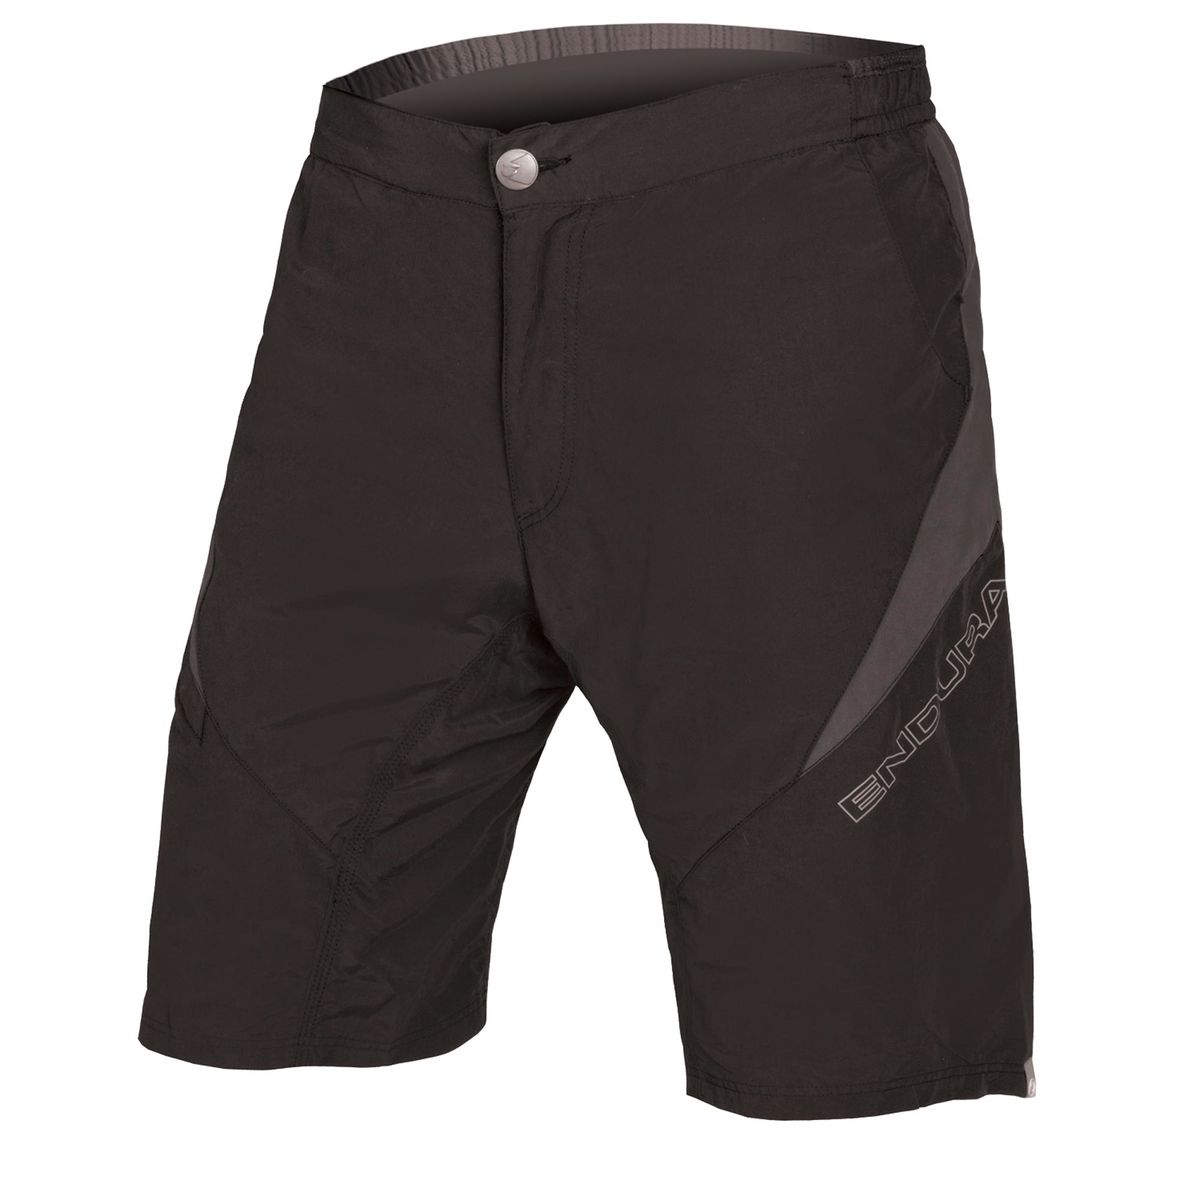 Cairn cycling shorts